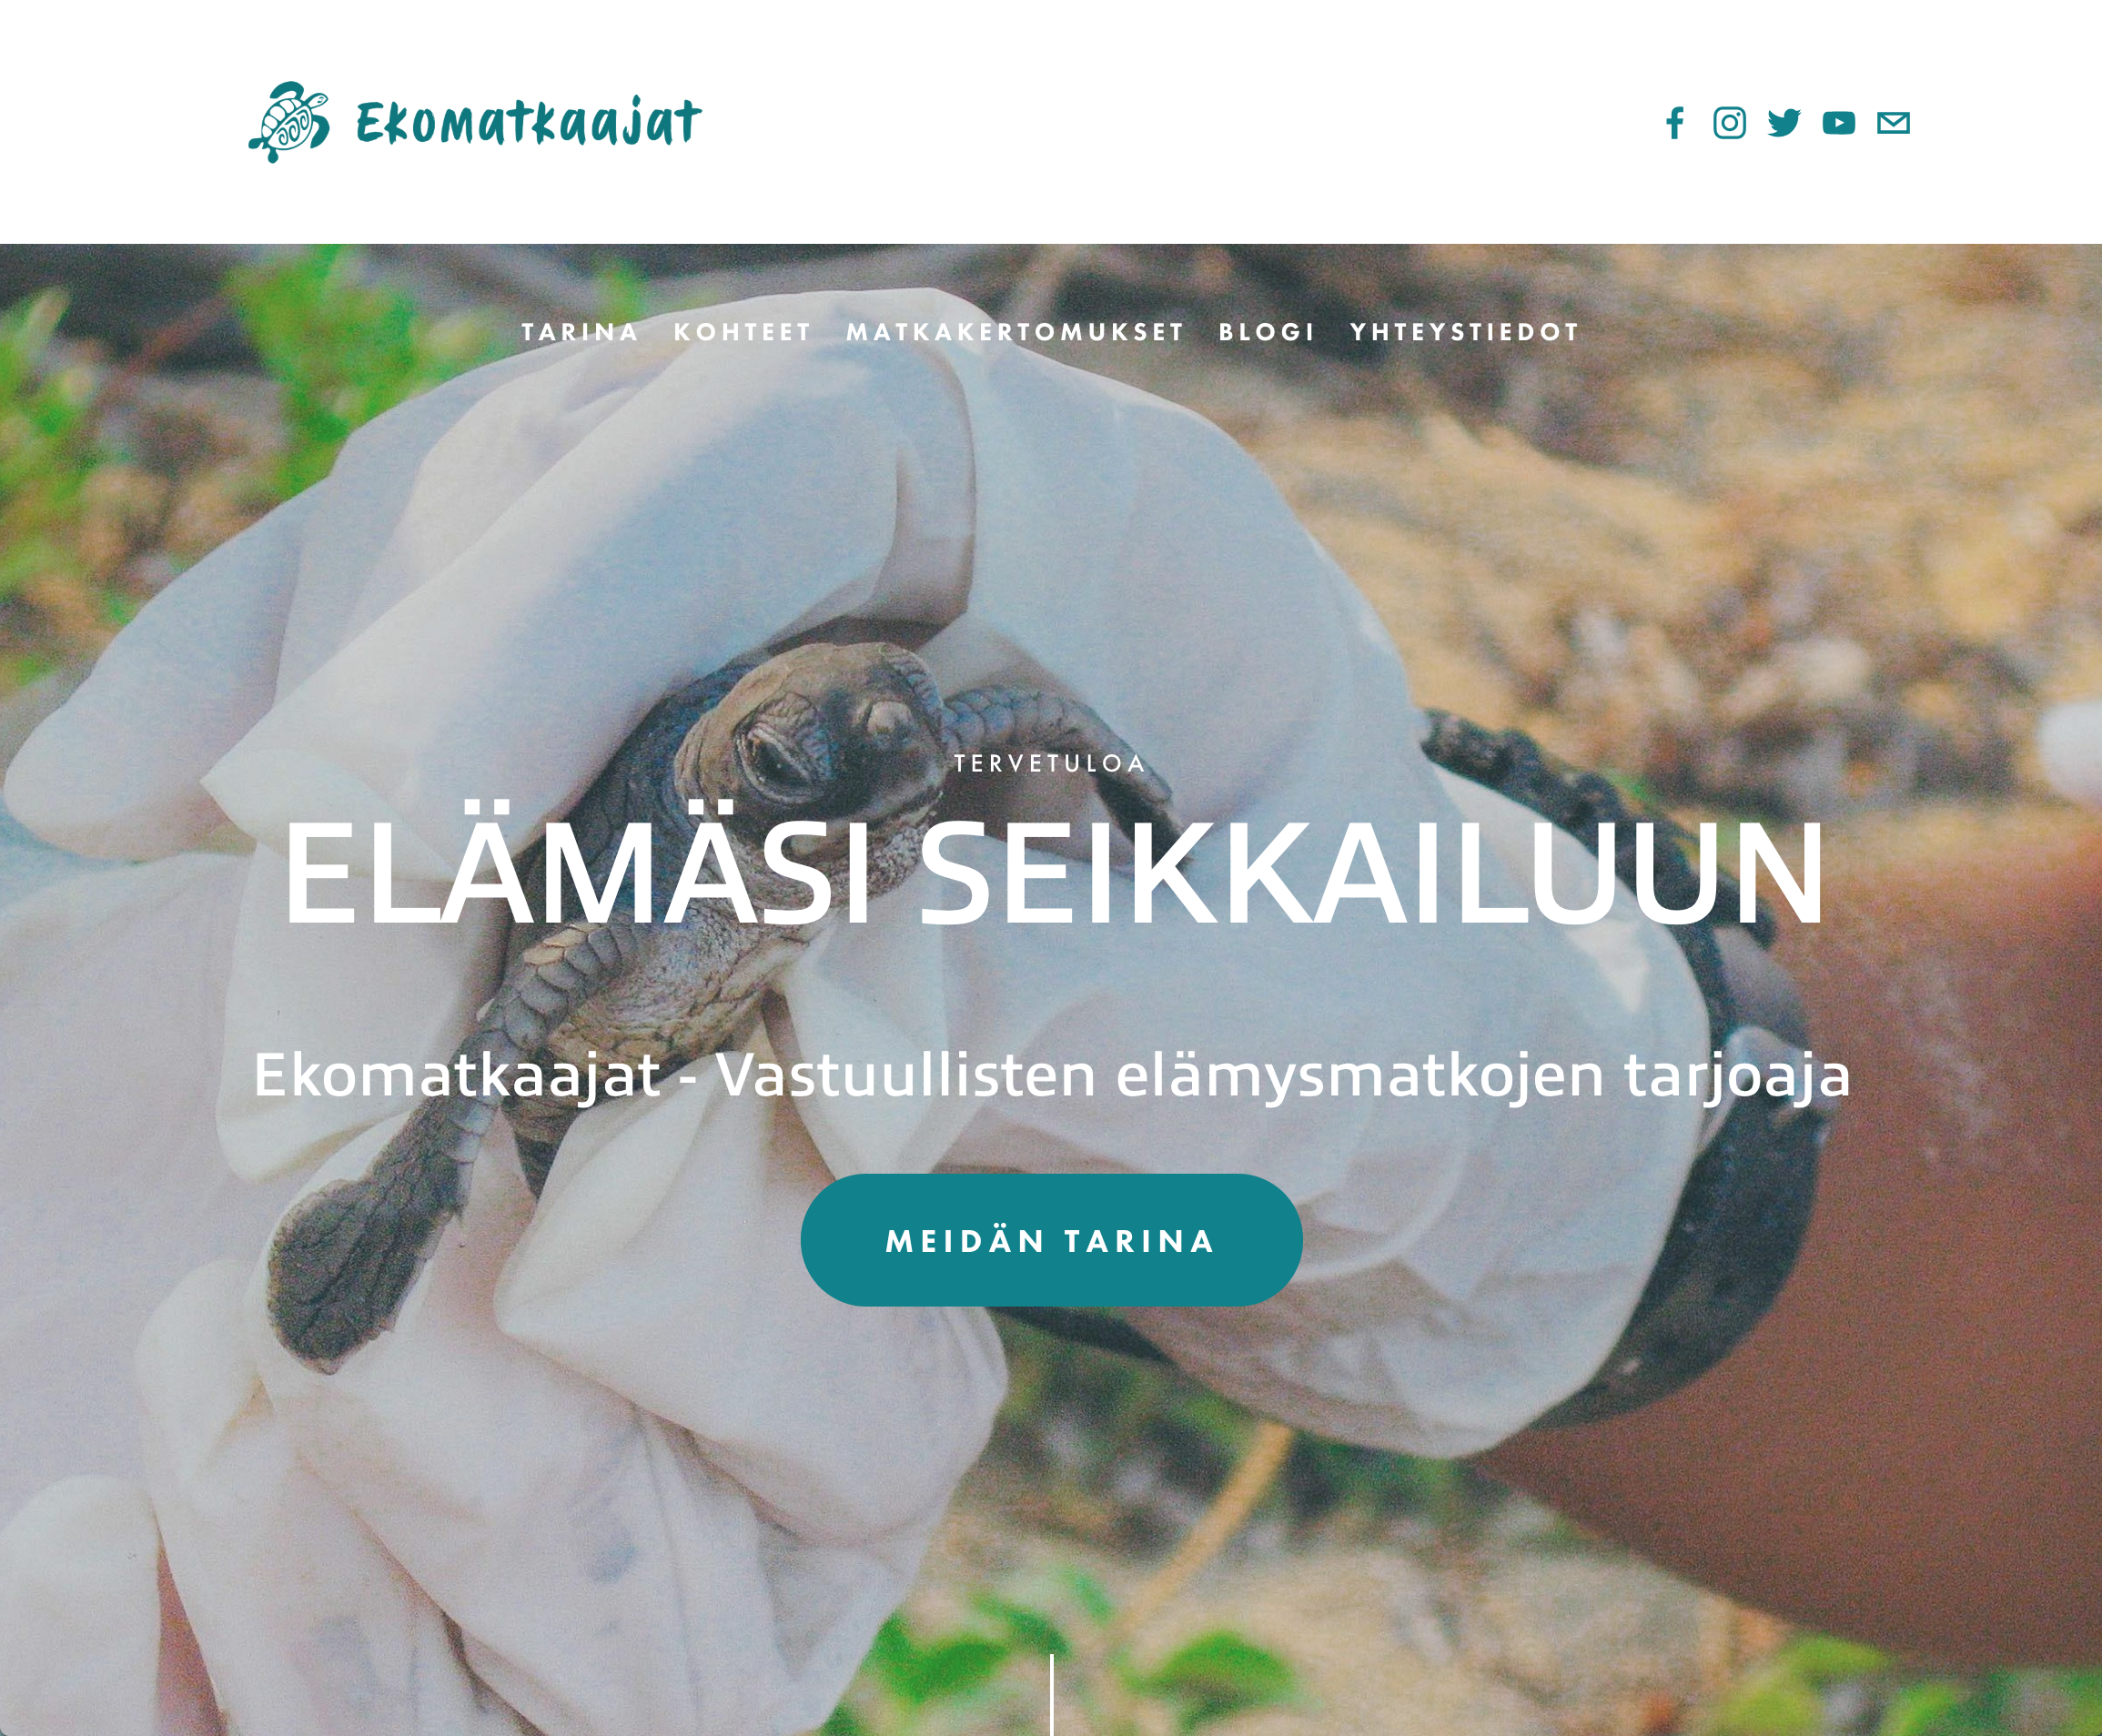 Here is home site of the new Ekomatkaajat-website